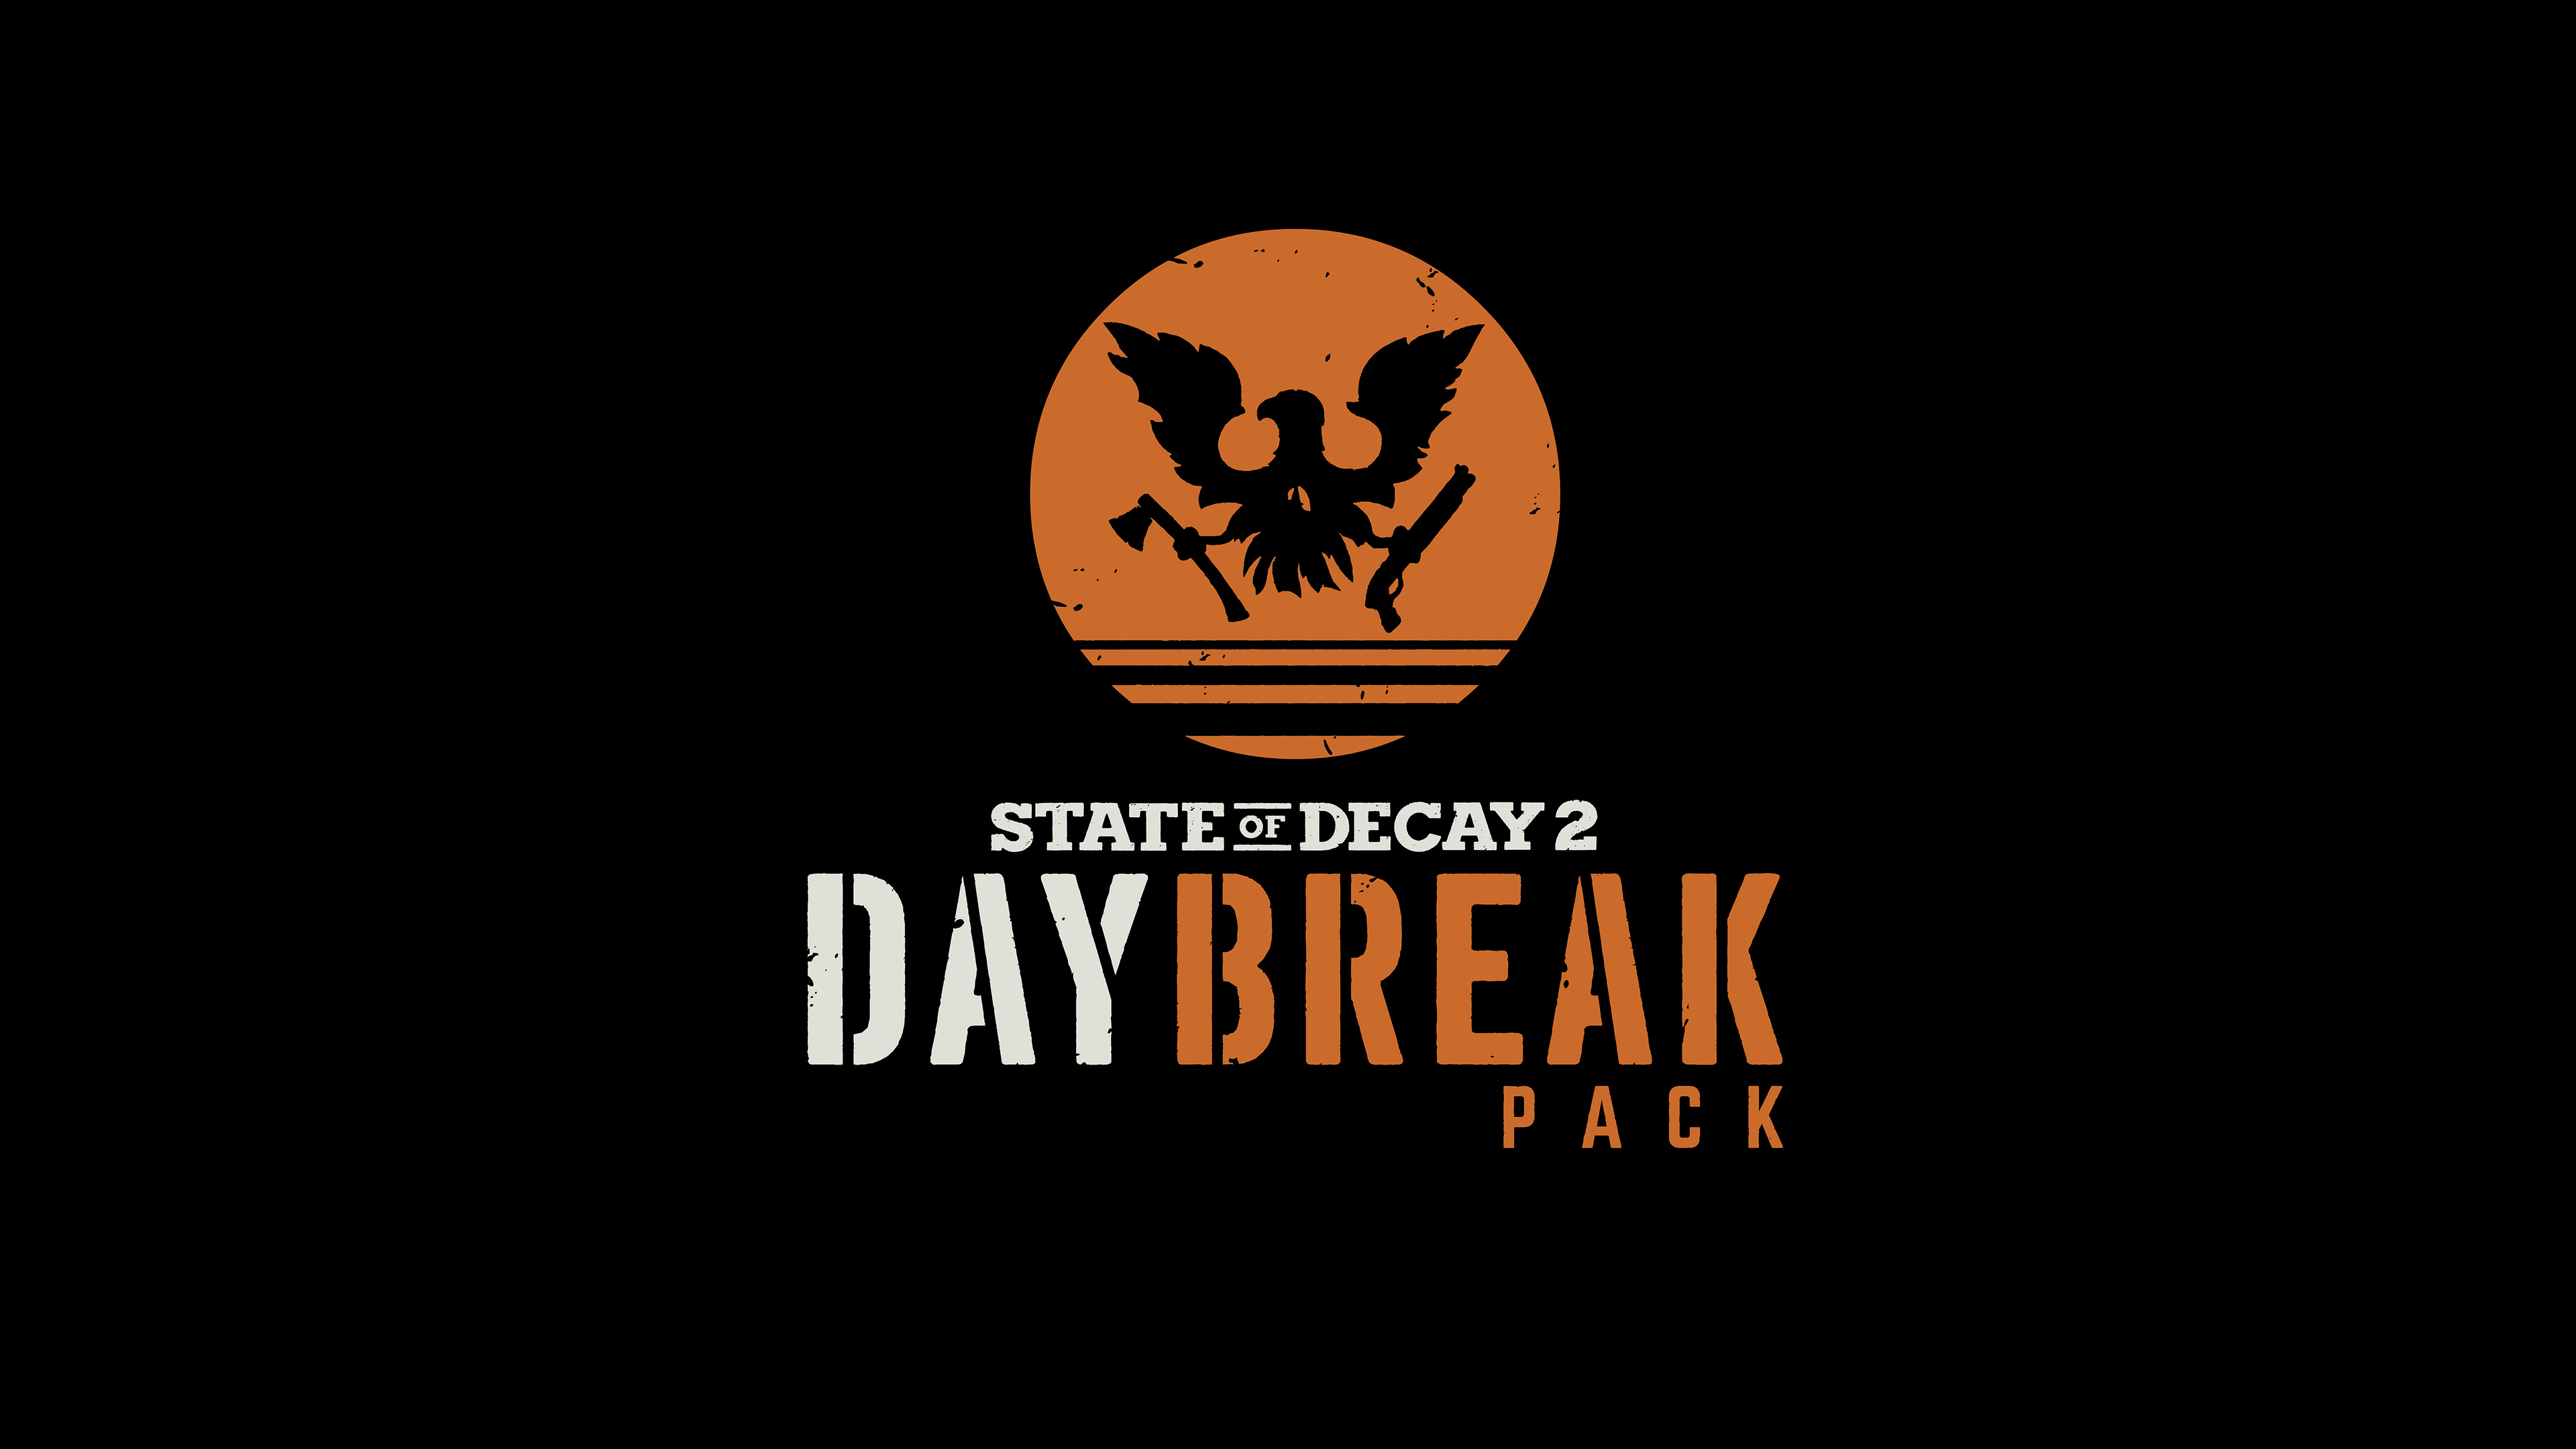 state of decay 2 daybreak pack 5k 1537691970 - State Of Decay 2 Daybreak Pack 5k - xbox games wallpapers, state of decay wallpapers, state of decay 2 wallpapers, ps games wallpapers, pc games wallpapers, hd-wallpapers, games wallpapers, 5k wallpapers, 4k-wallpapers, 2018 games wallpapers